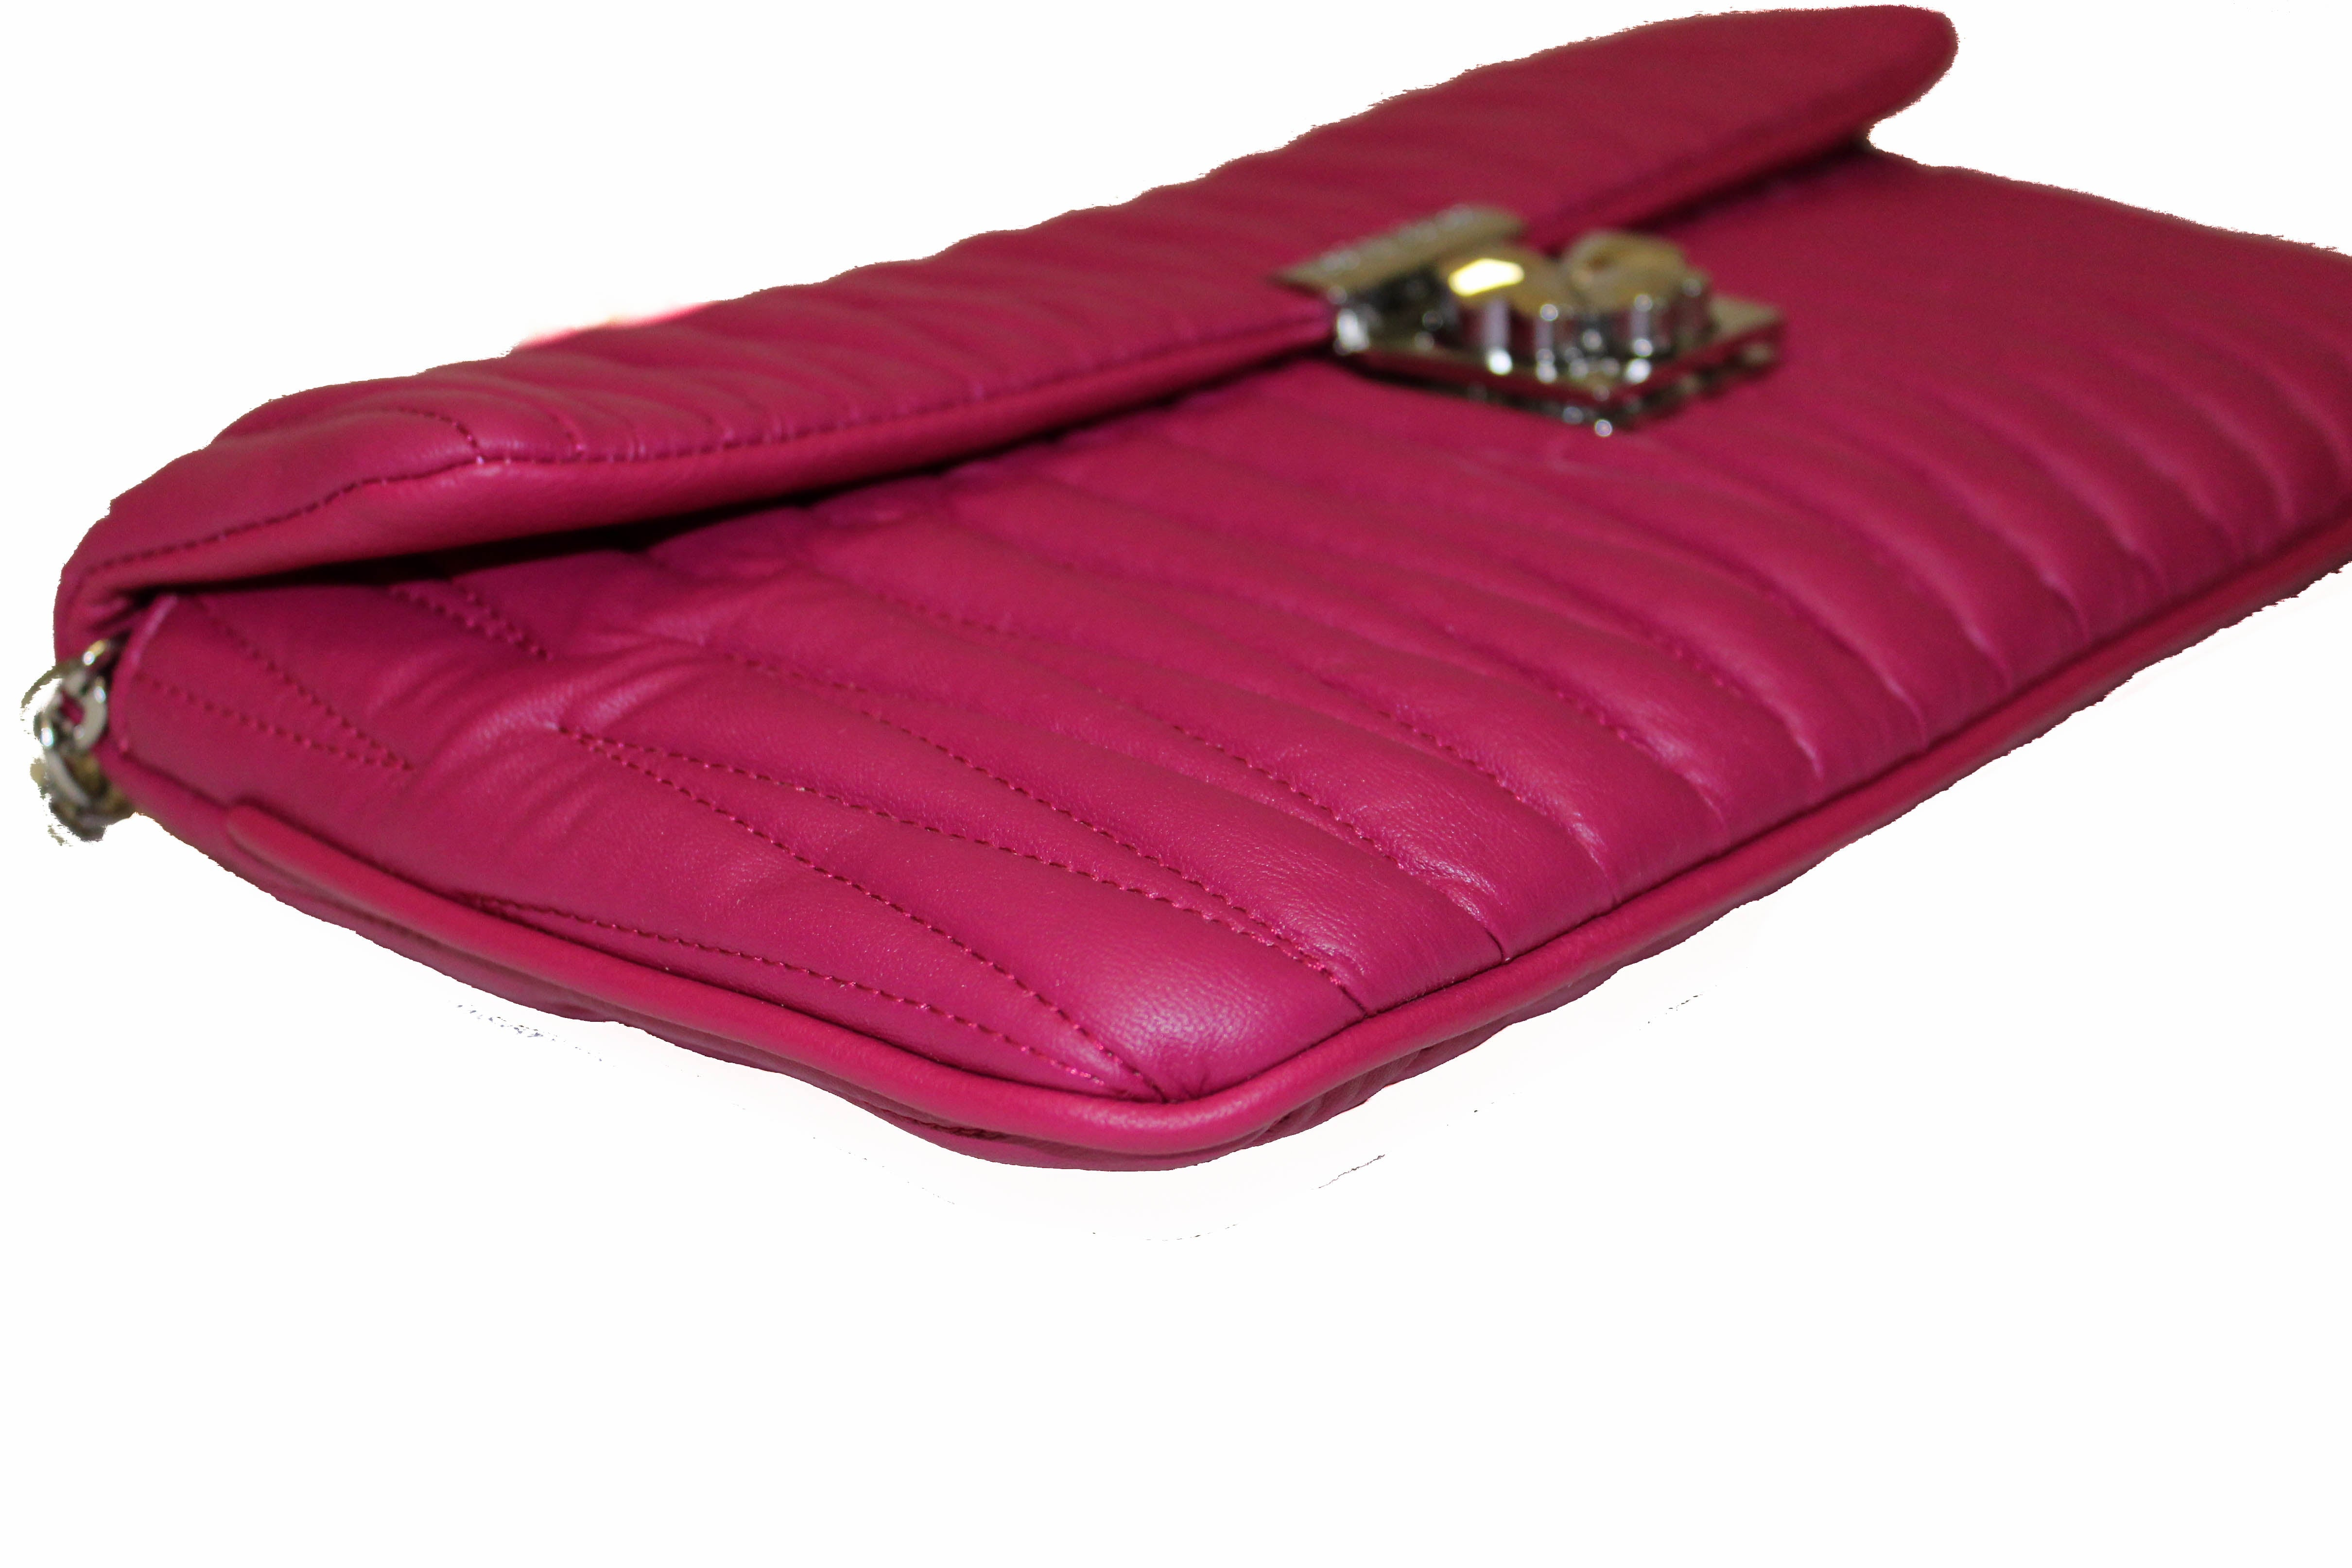 Authentic Miu Miu Magenta Quilted Leather Clutch/Crossbody Bag